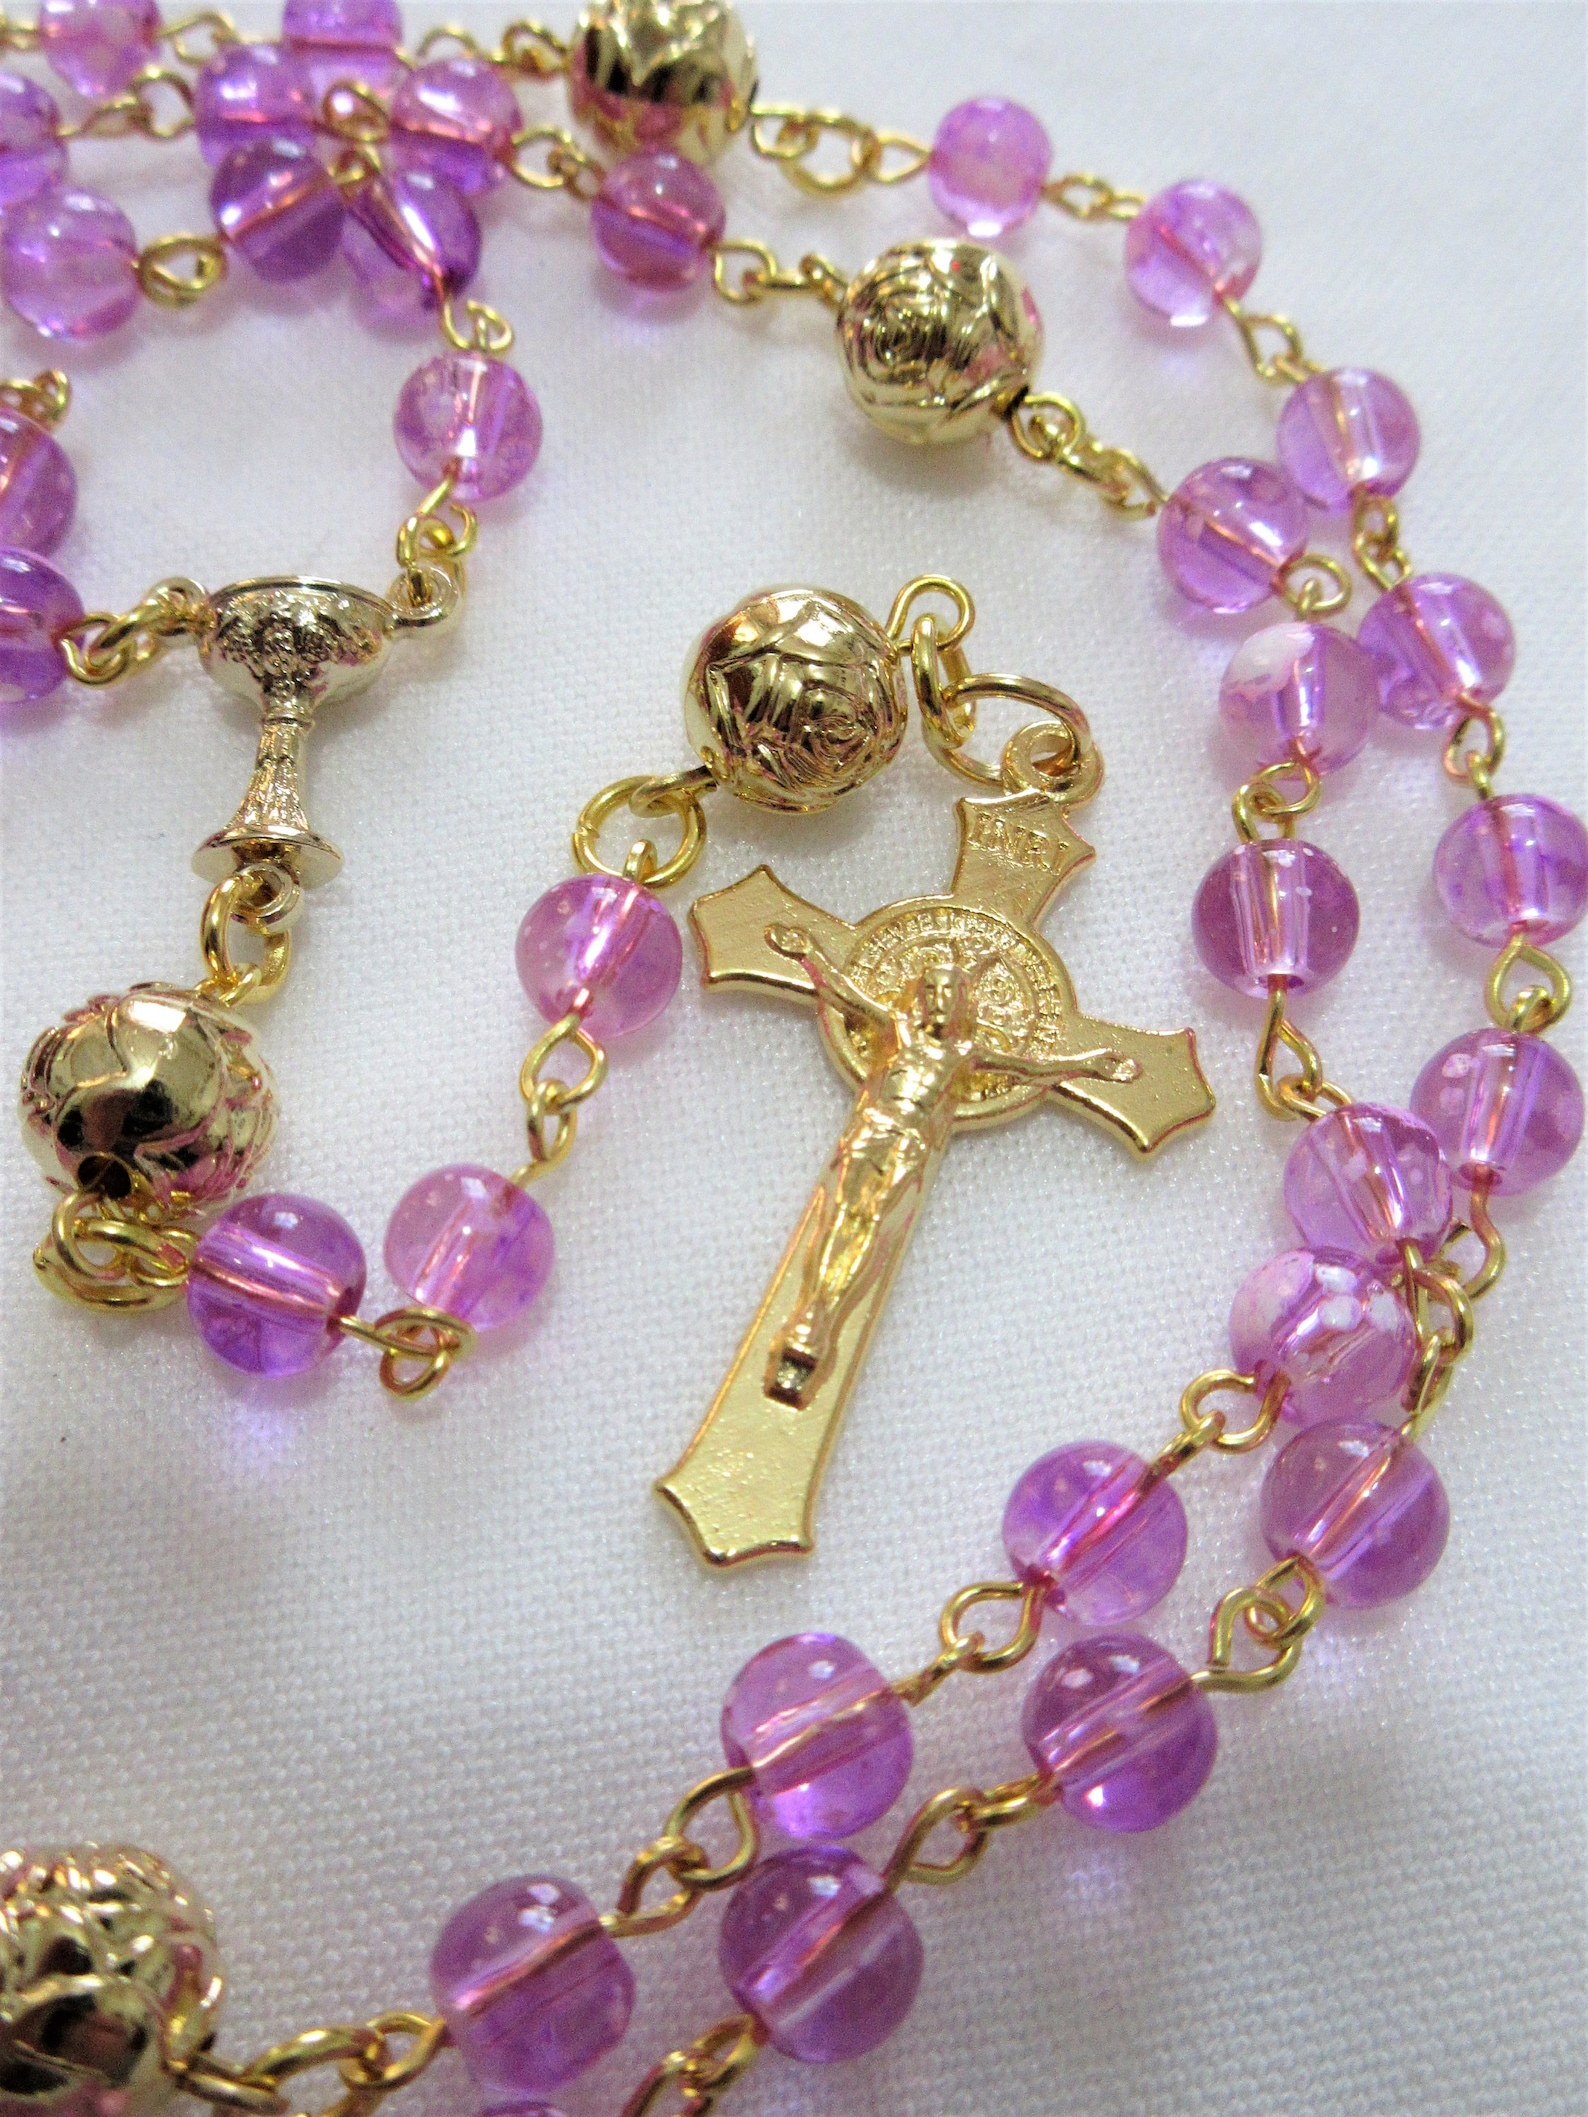 Pink Catholic rosary First Communion 5 decade rosary gold